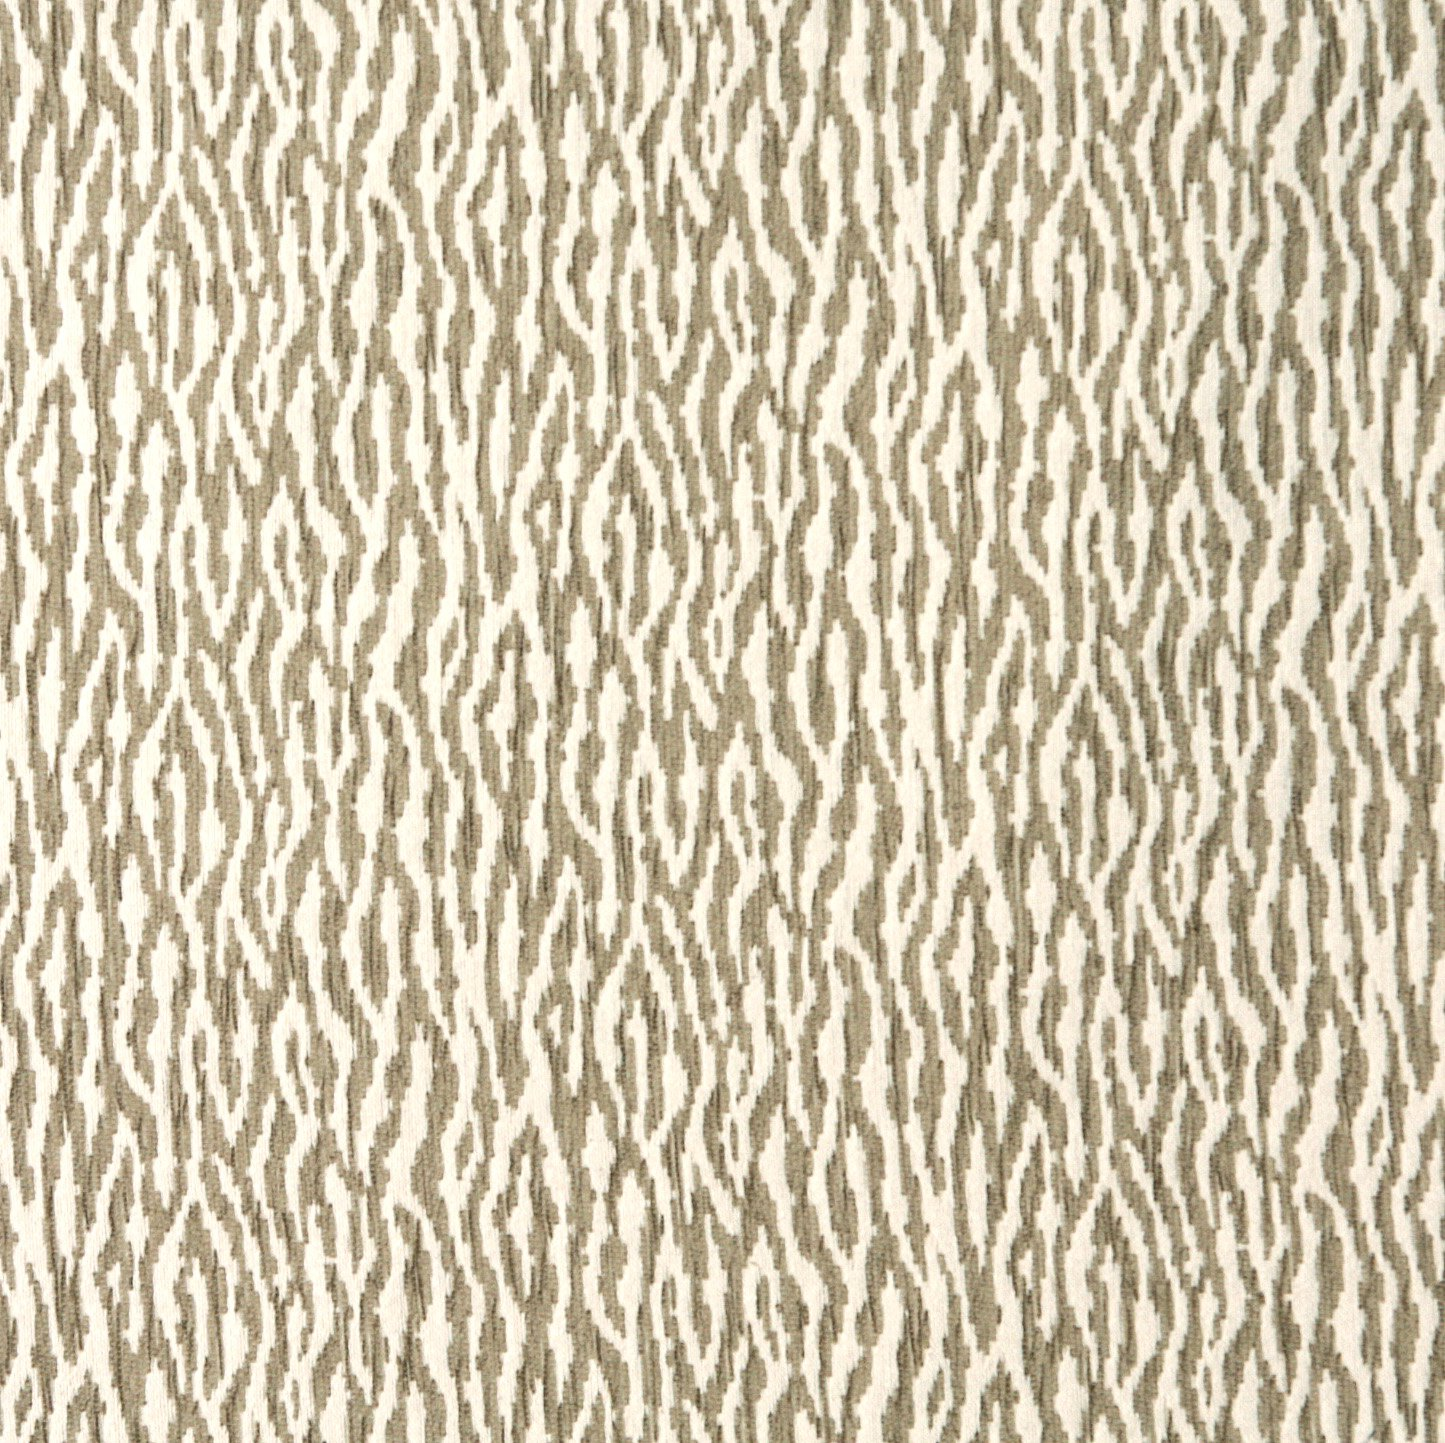 chenille sofa fabric care silver leather uk e193 beige tiger pattern textured woven